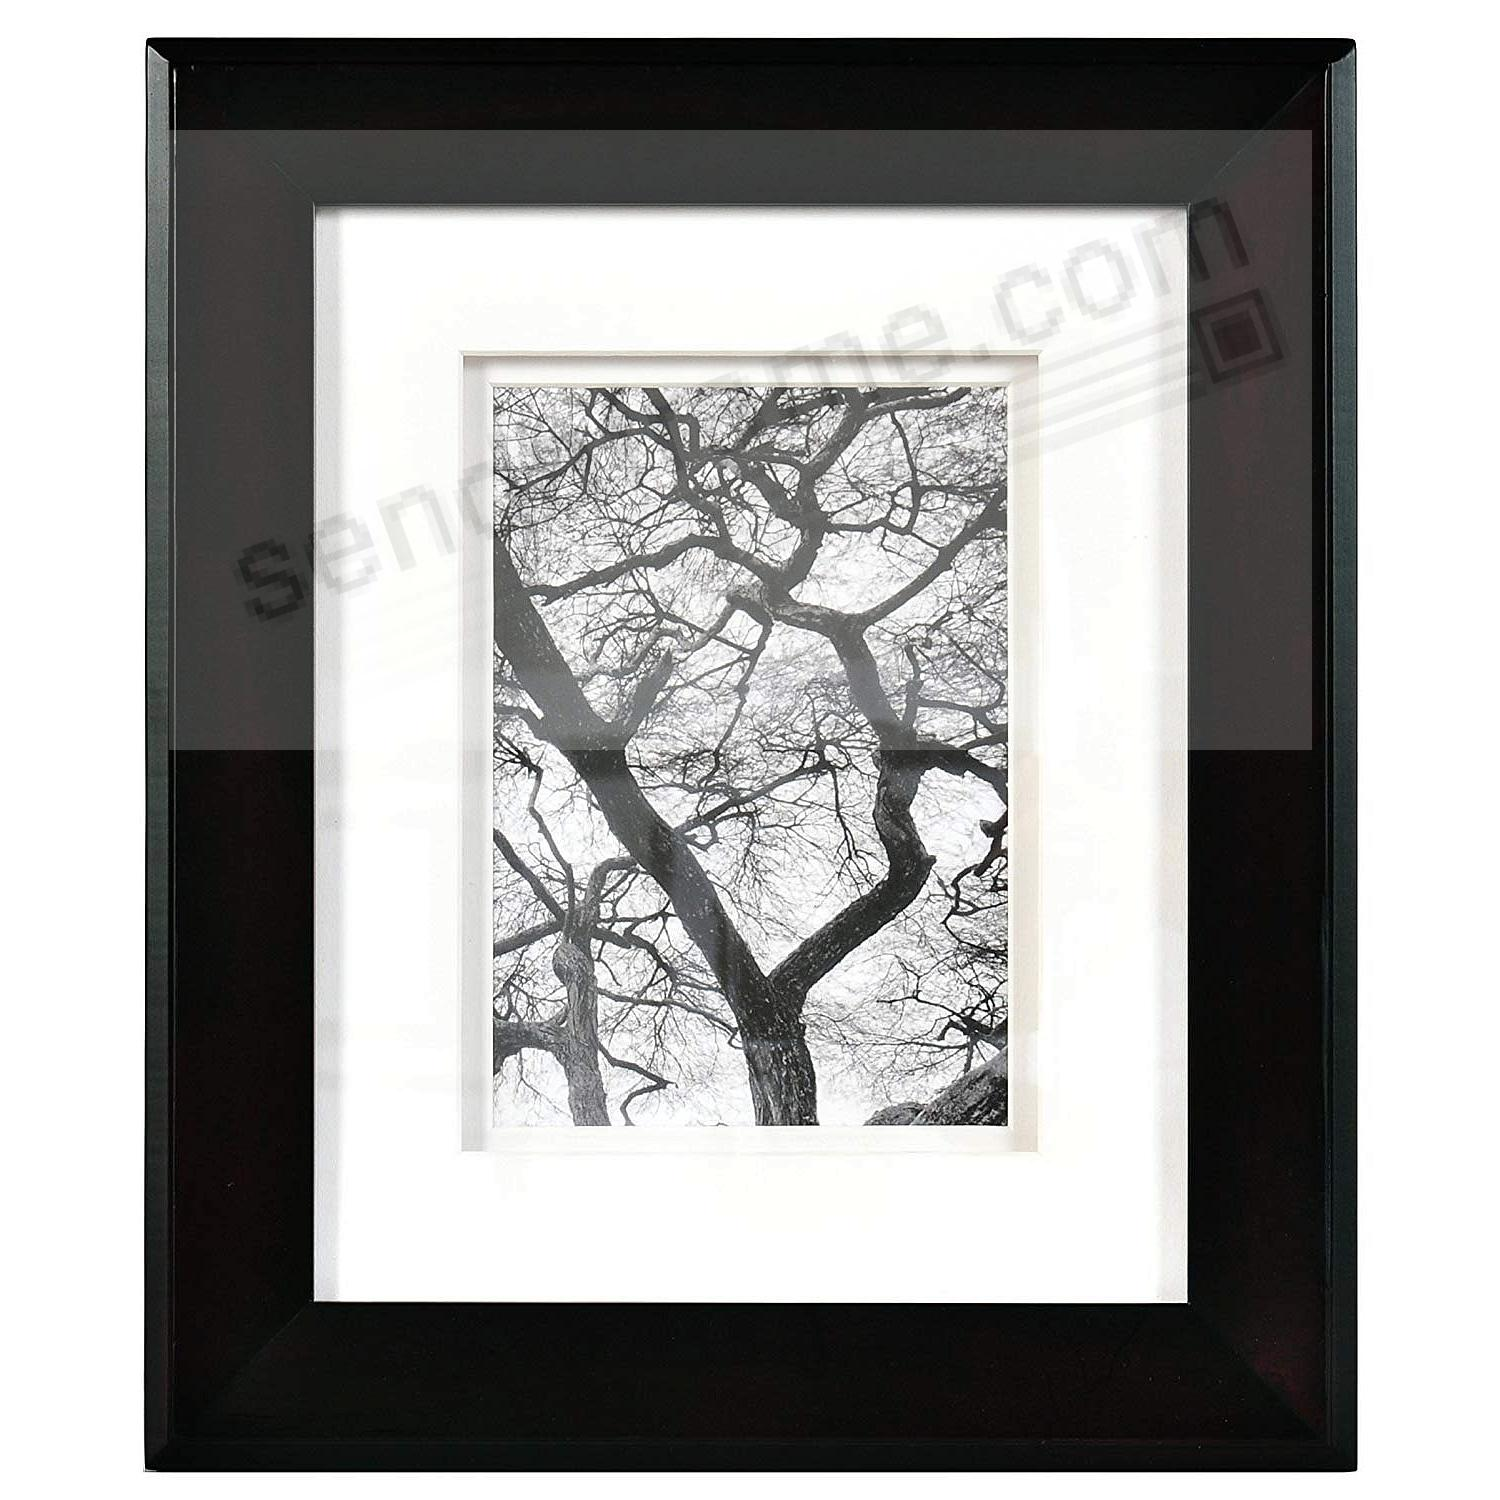 CHELSEA Dbl-Matted Black Wood frame 8x10/5x7 from ARTCARE® by Nielsen®